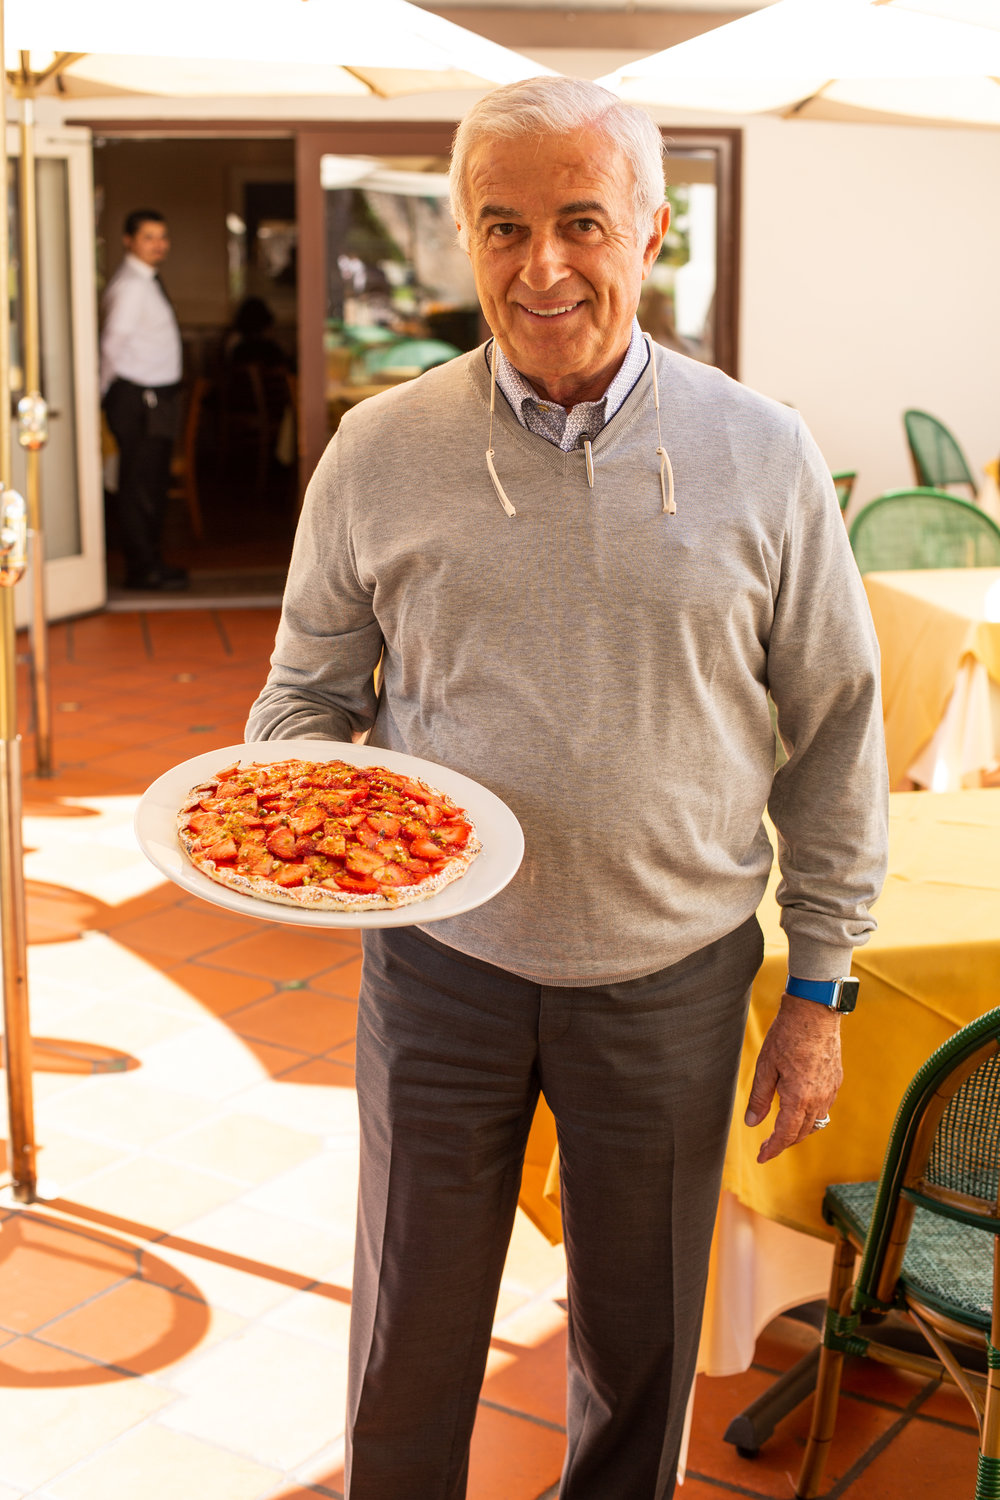 Tarcisio Mosconi opened the famed Cross Creek Italian eatery in 1995 with co-owner Atoni Alessi.